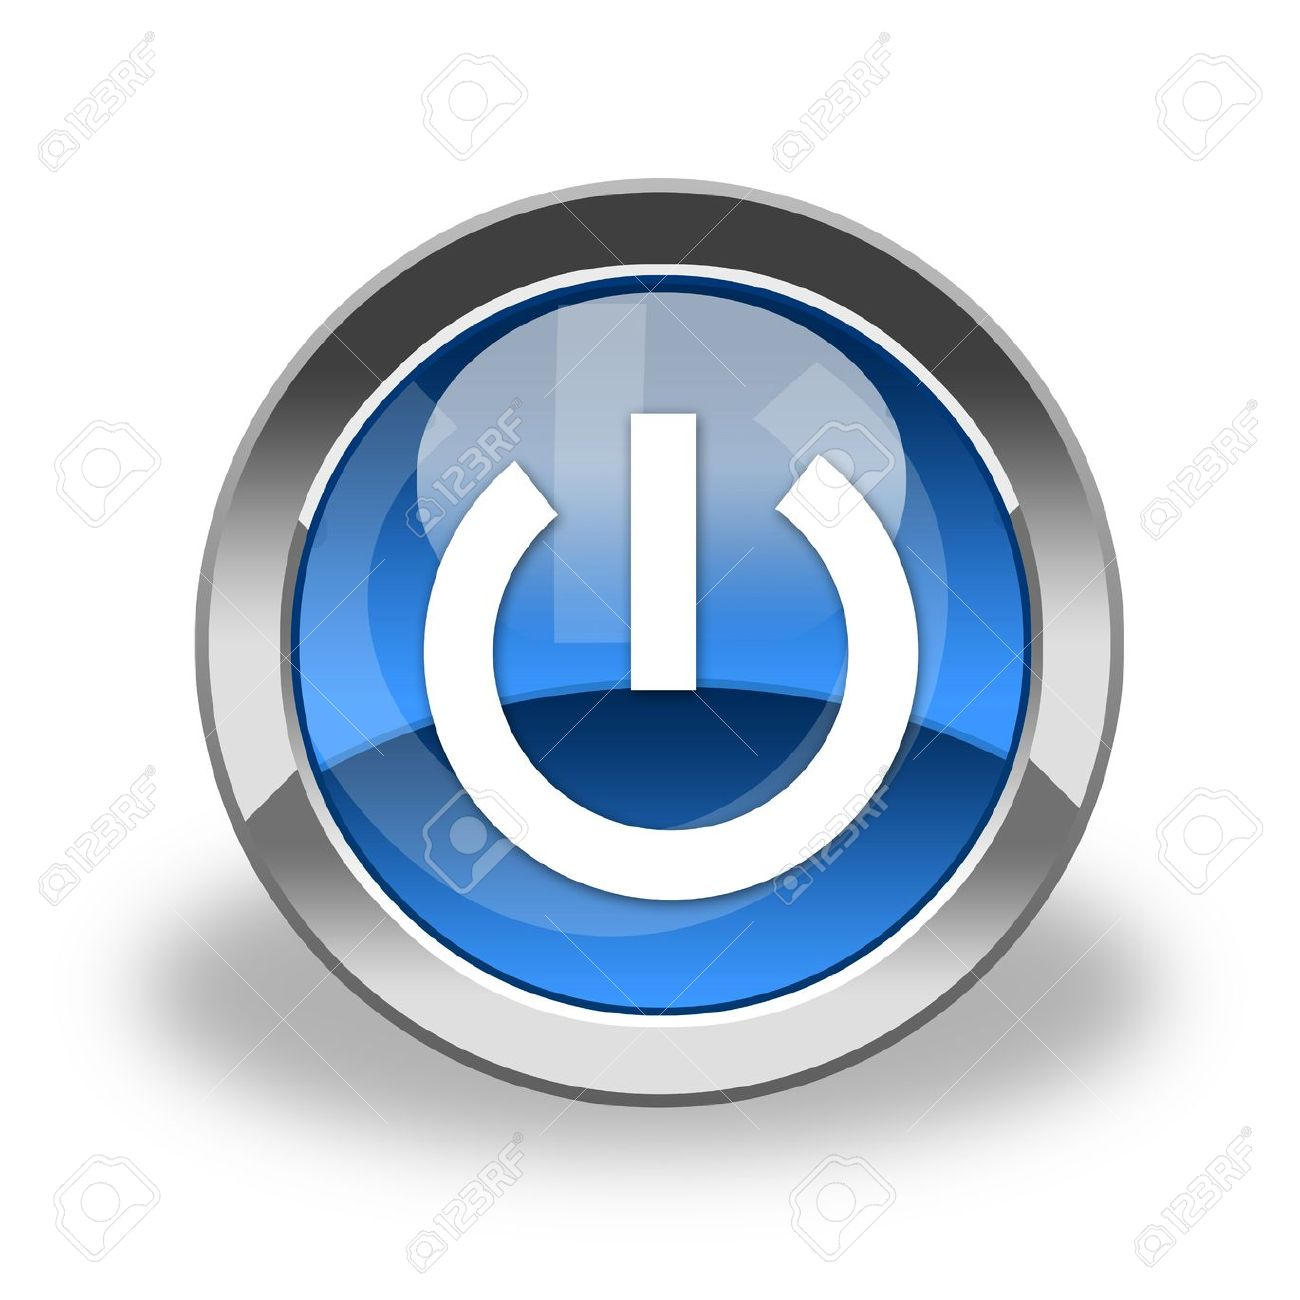 power button, icon Stock Photo - 6129174